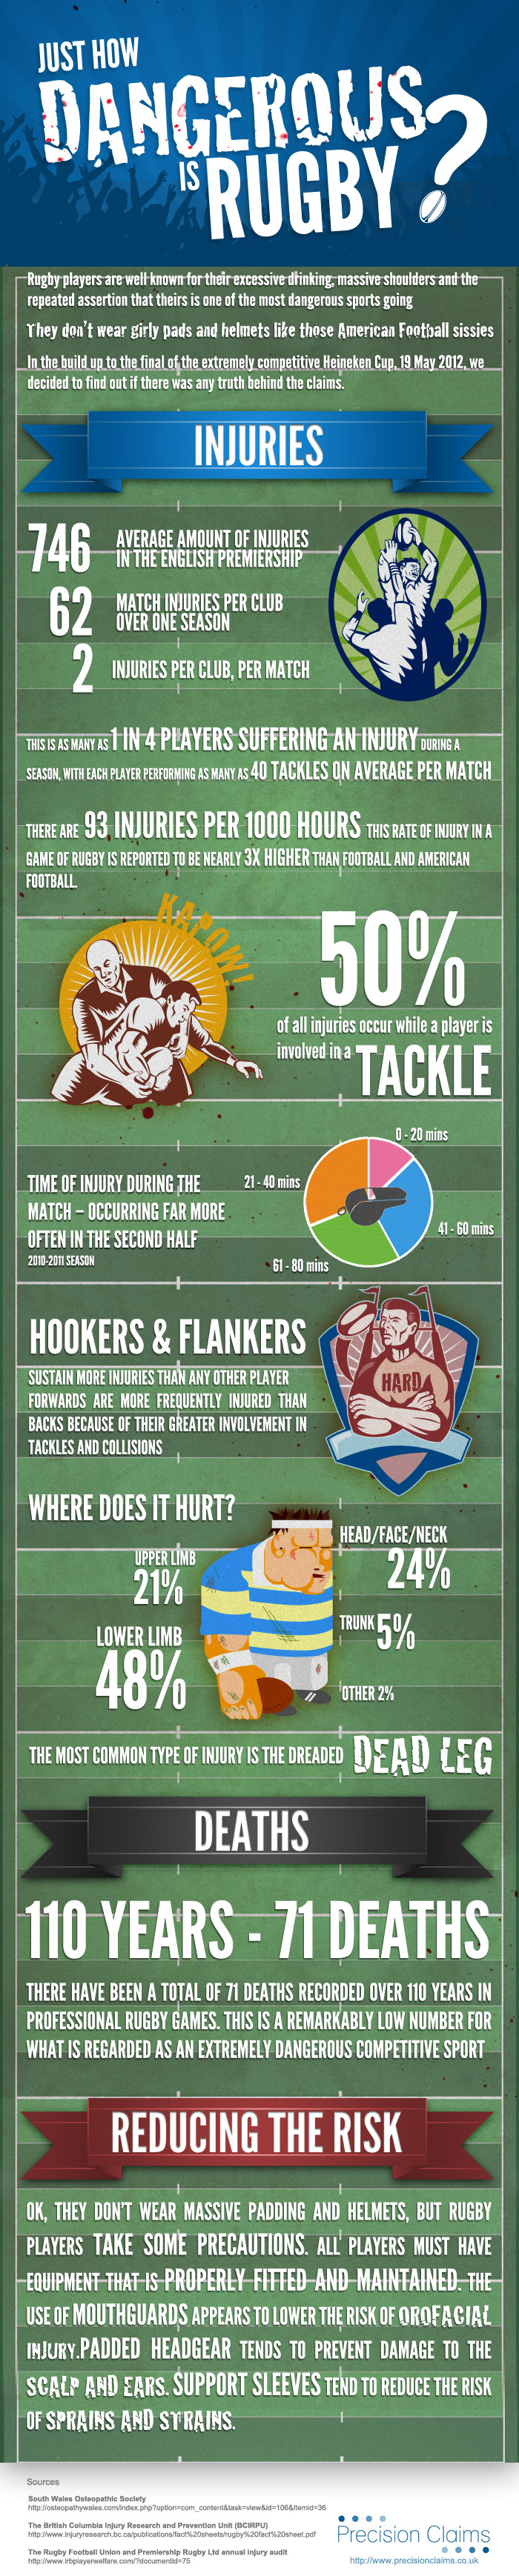 info3 - One for the University: Is Playing Rugby Worth the Risk?